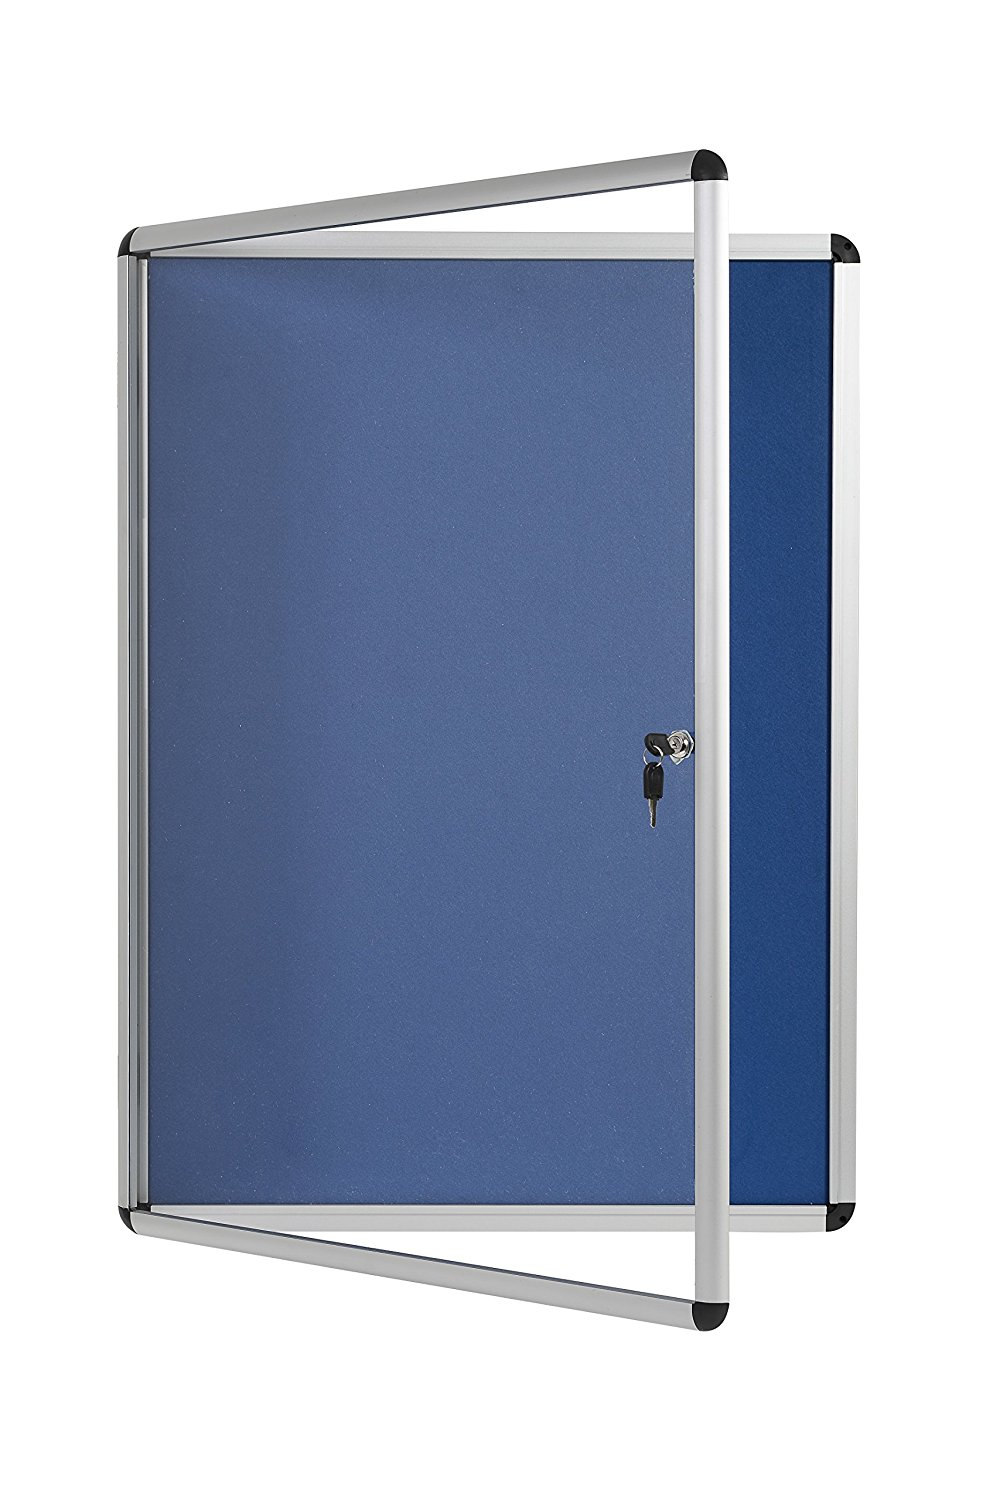 Foamboard Bi-Office Enclore Blue Felt Lockable Noticeboard 20xA4